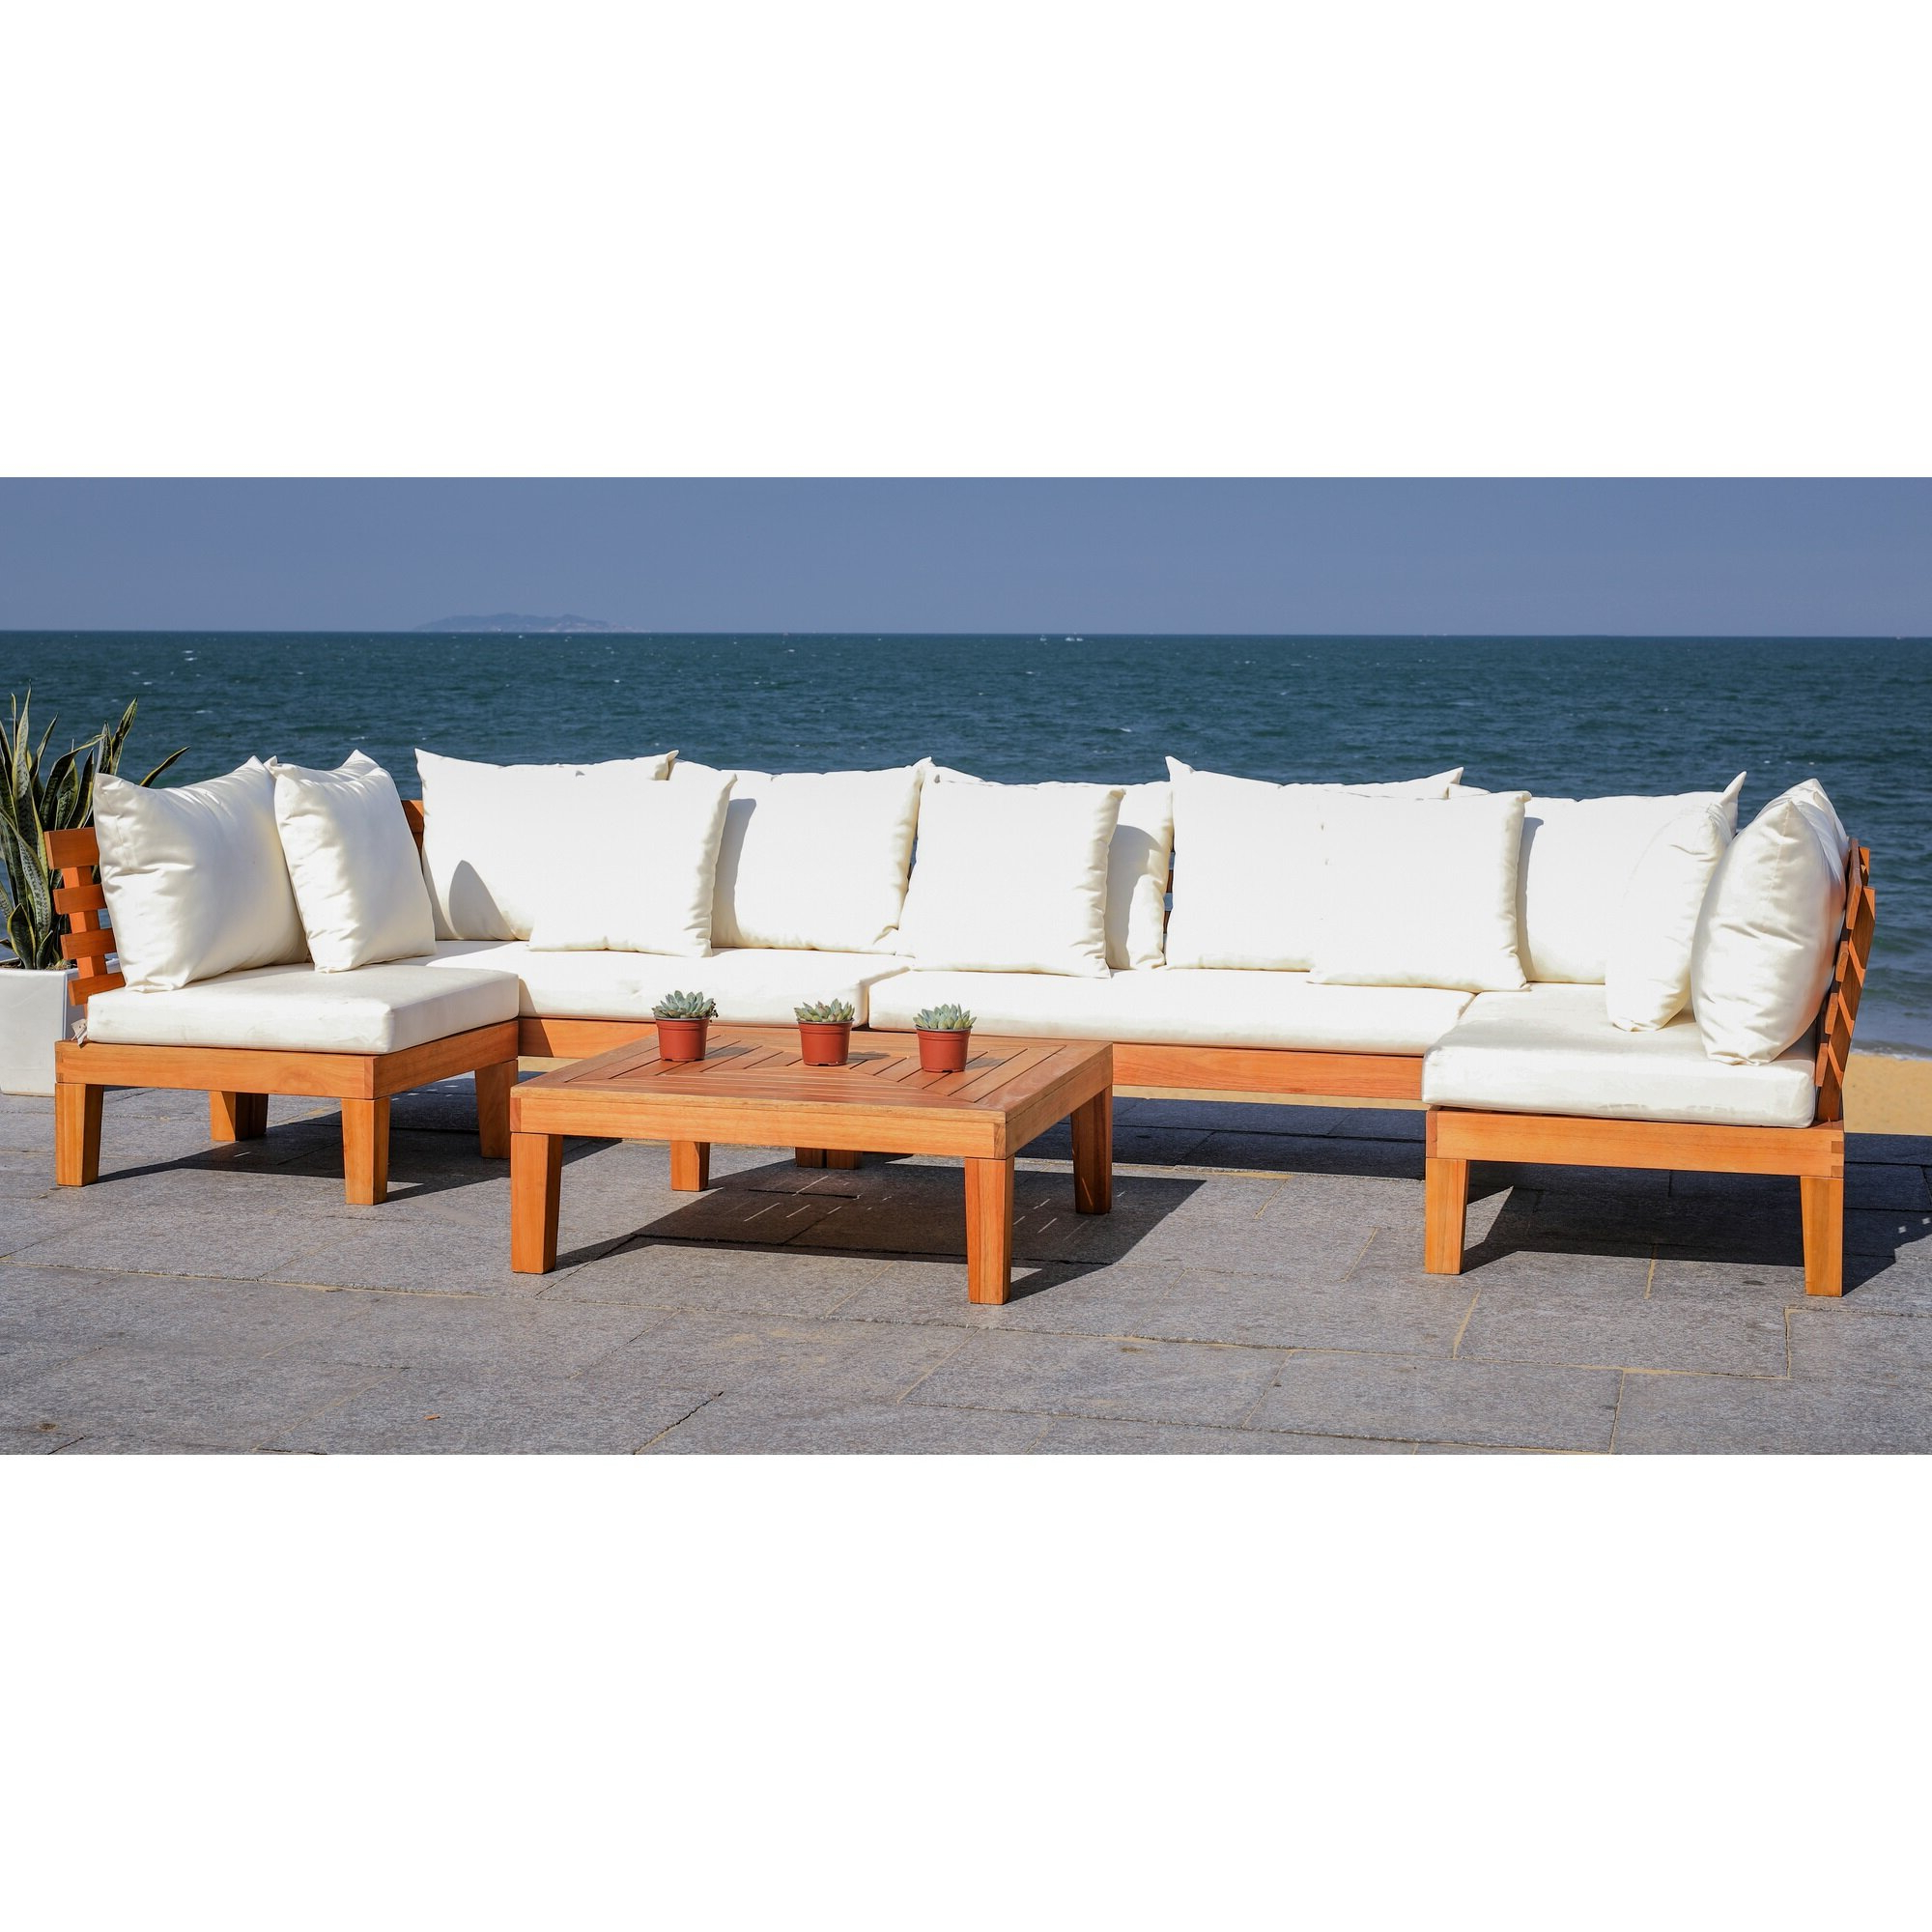 Greta Living Patio Sectional With Cushions Intended For Newest Brecht Patio Sectionals With Cushions (View 5 of 25)